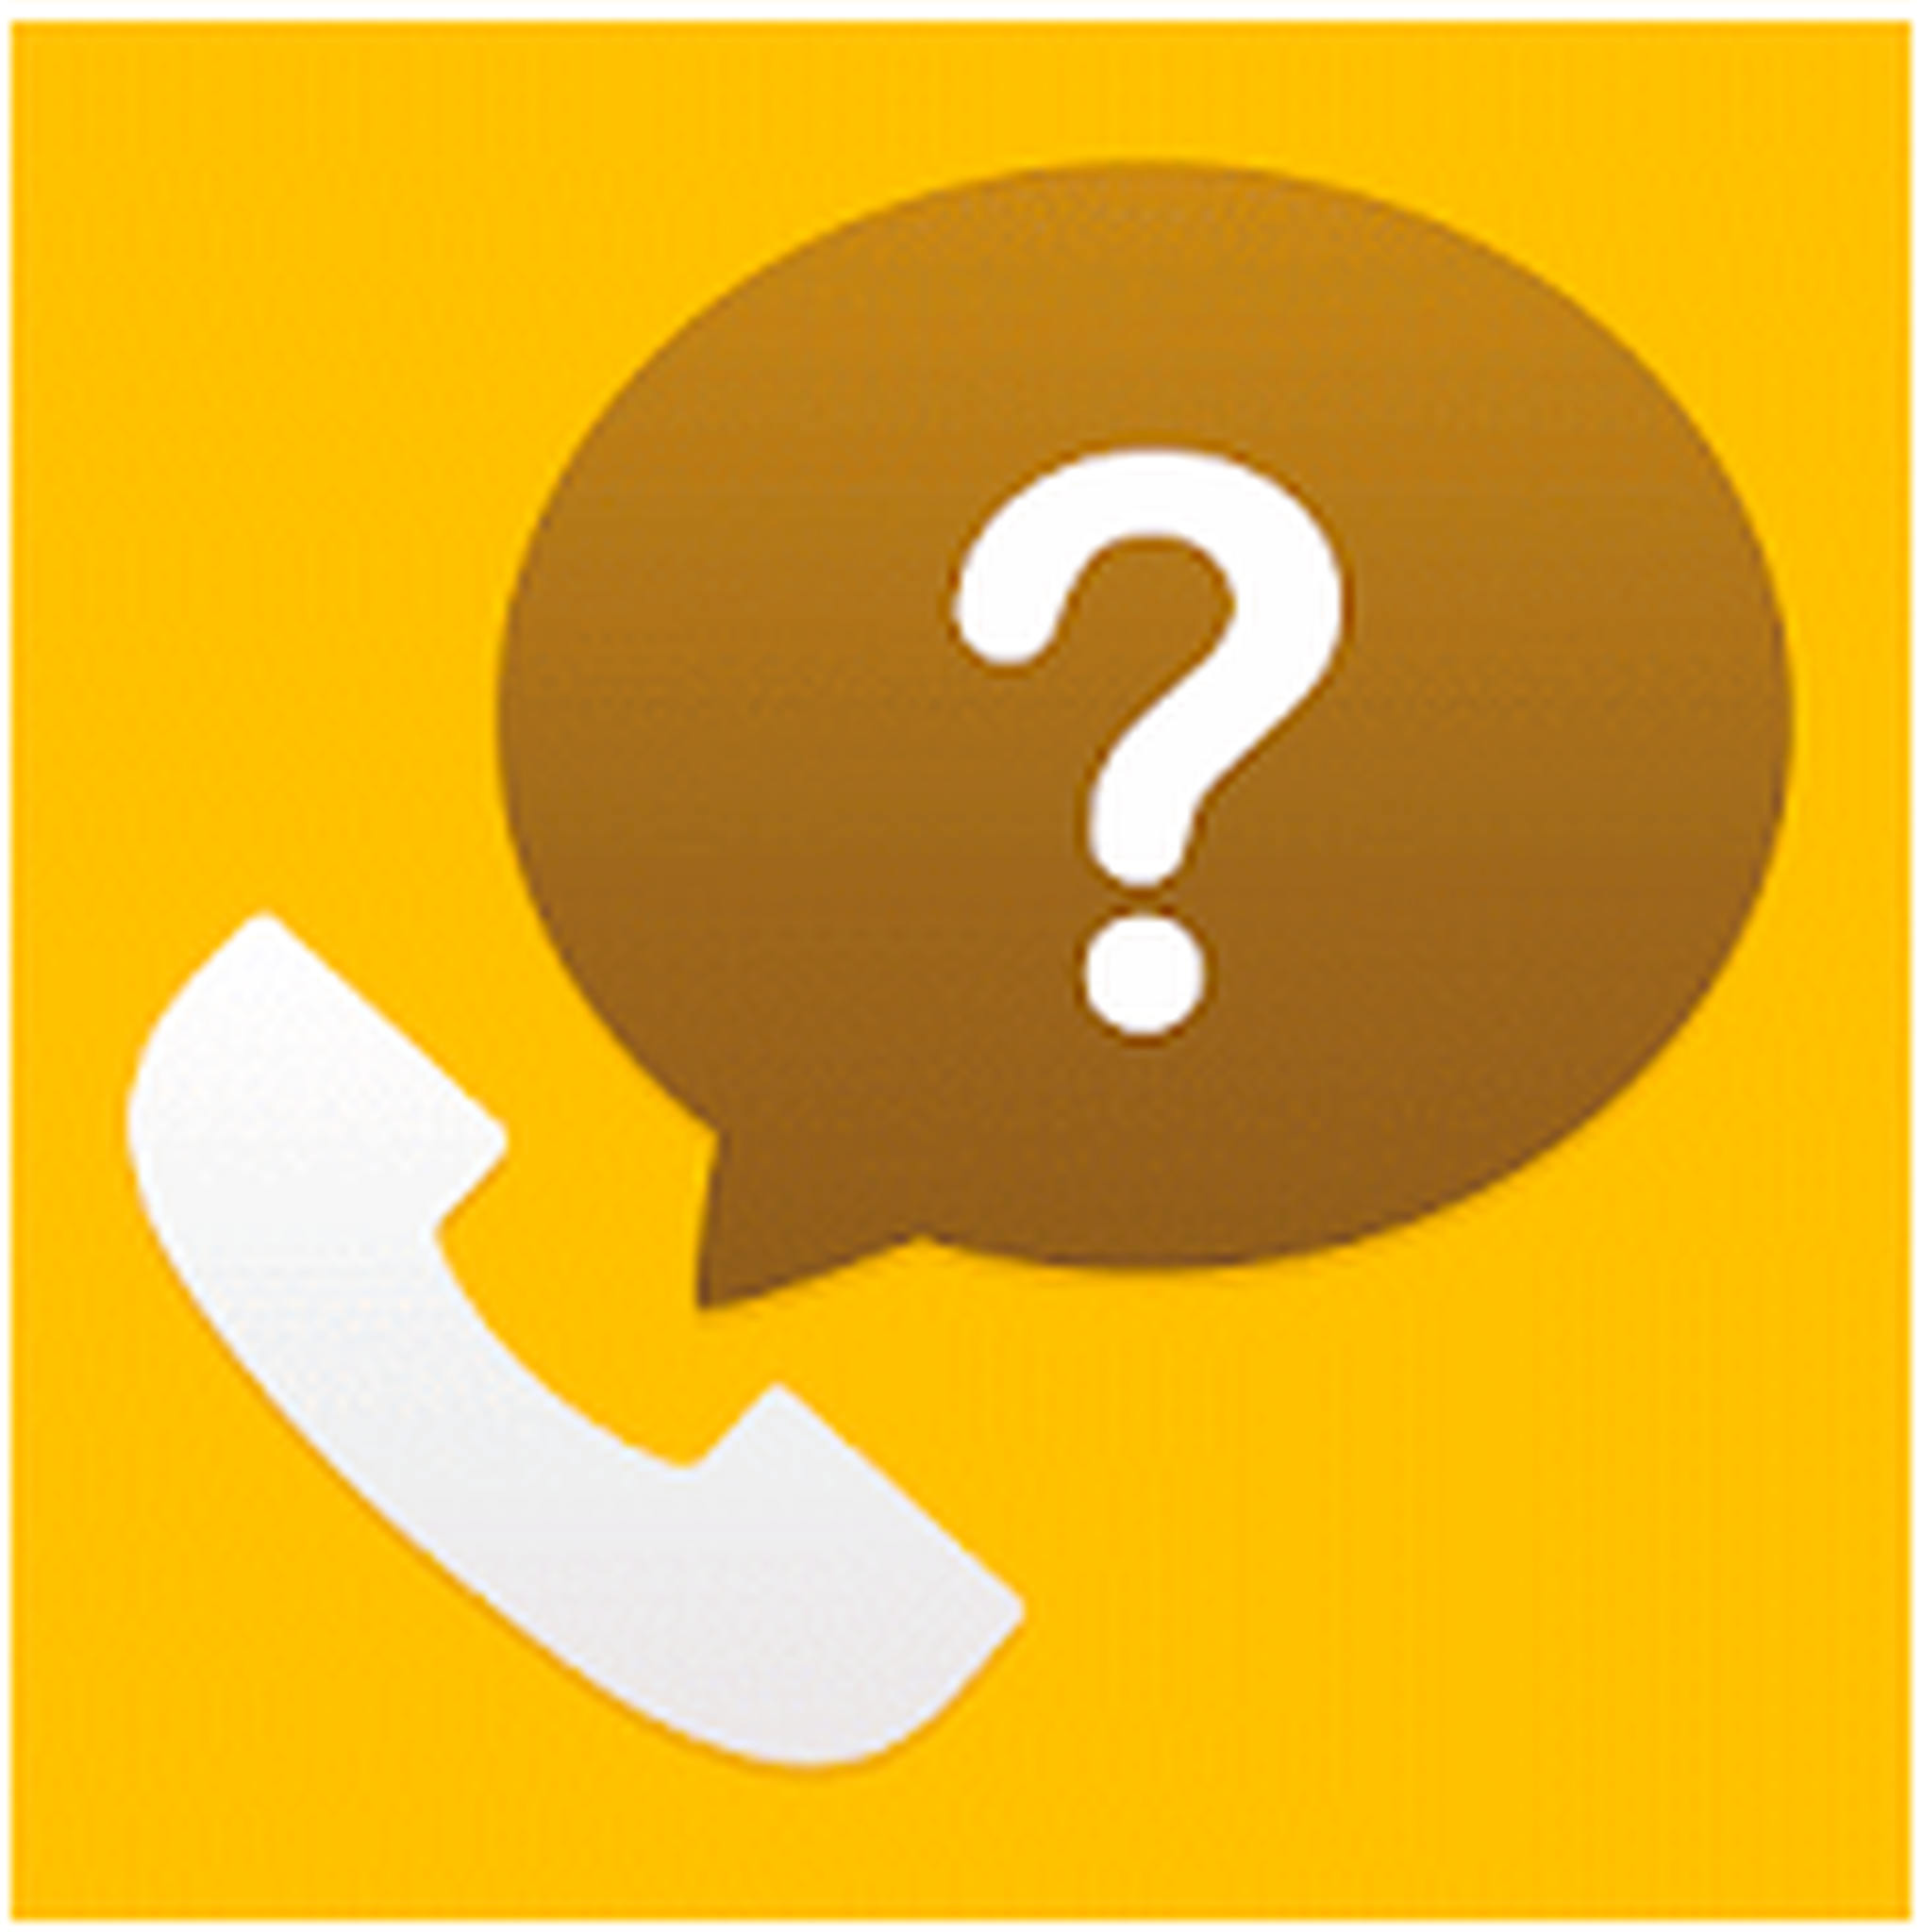 Whycall